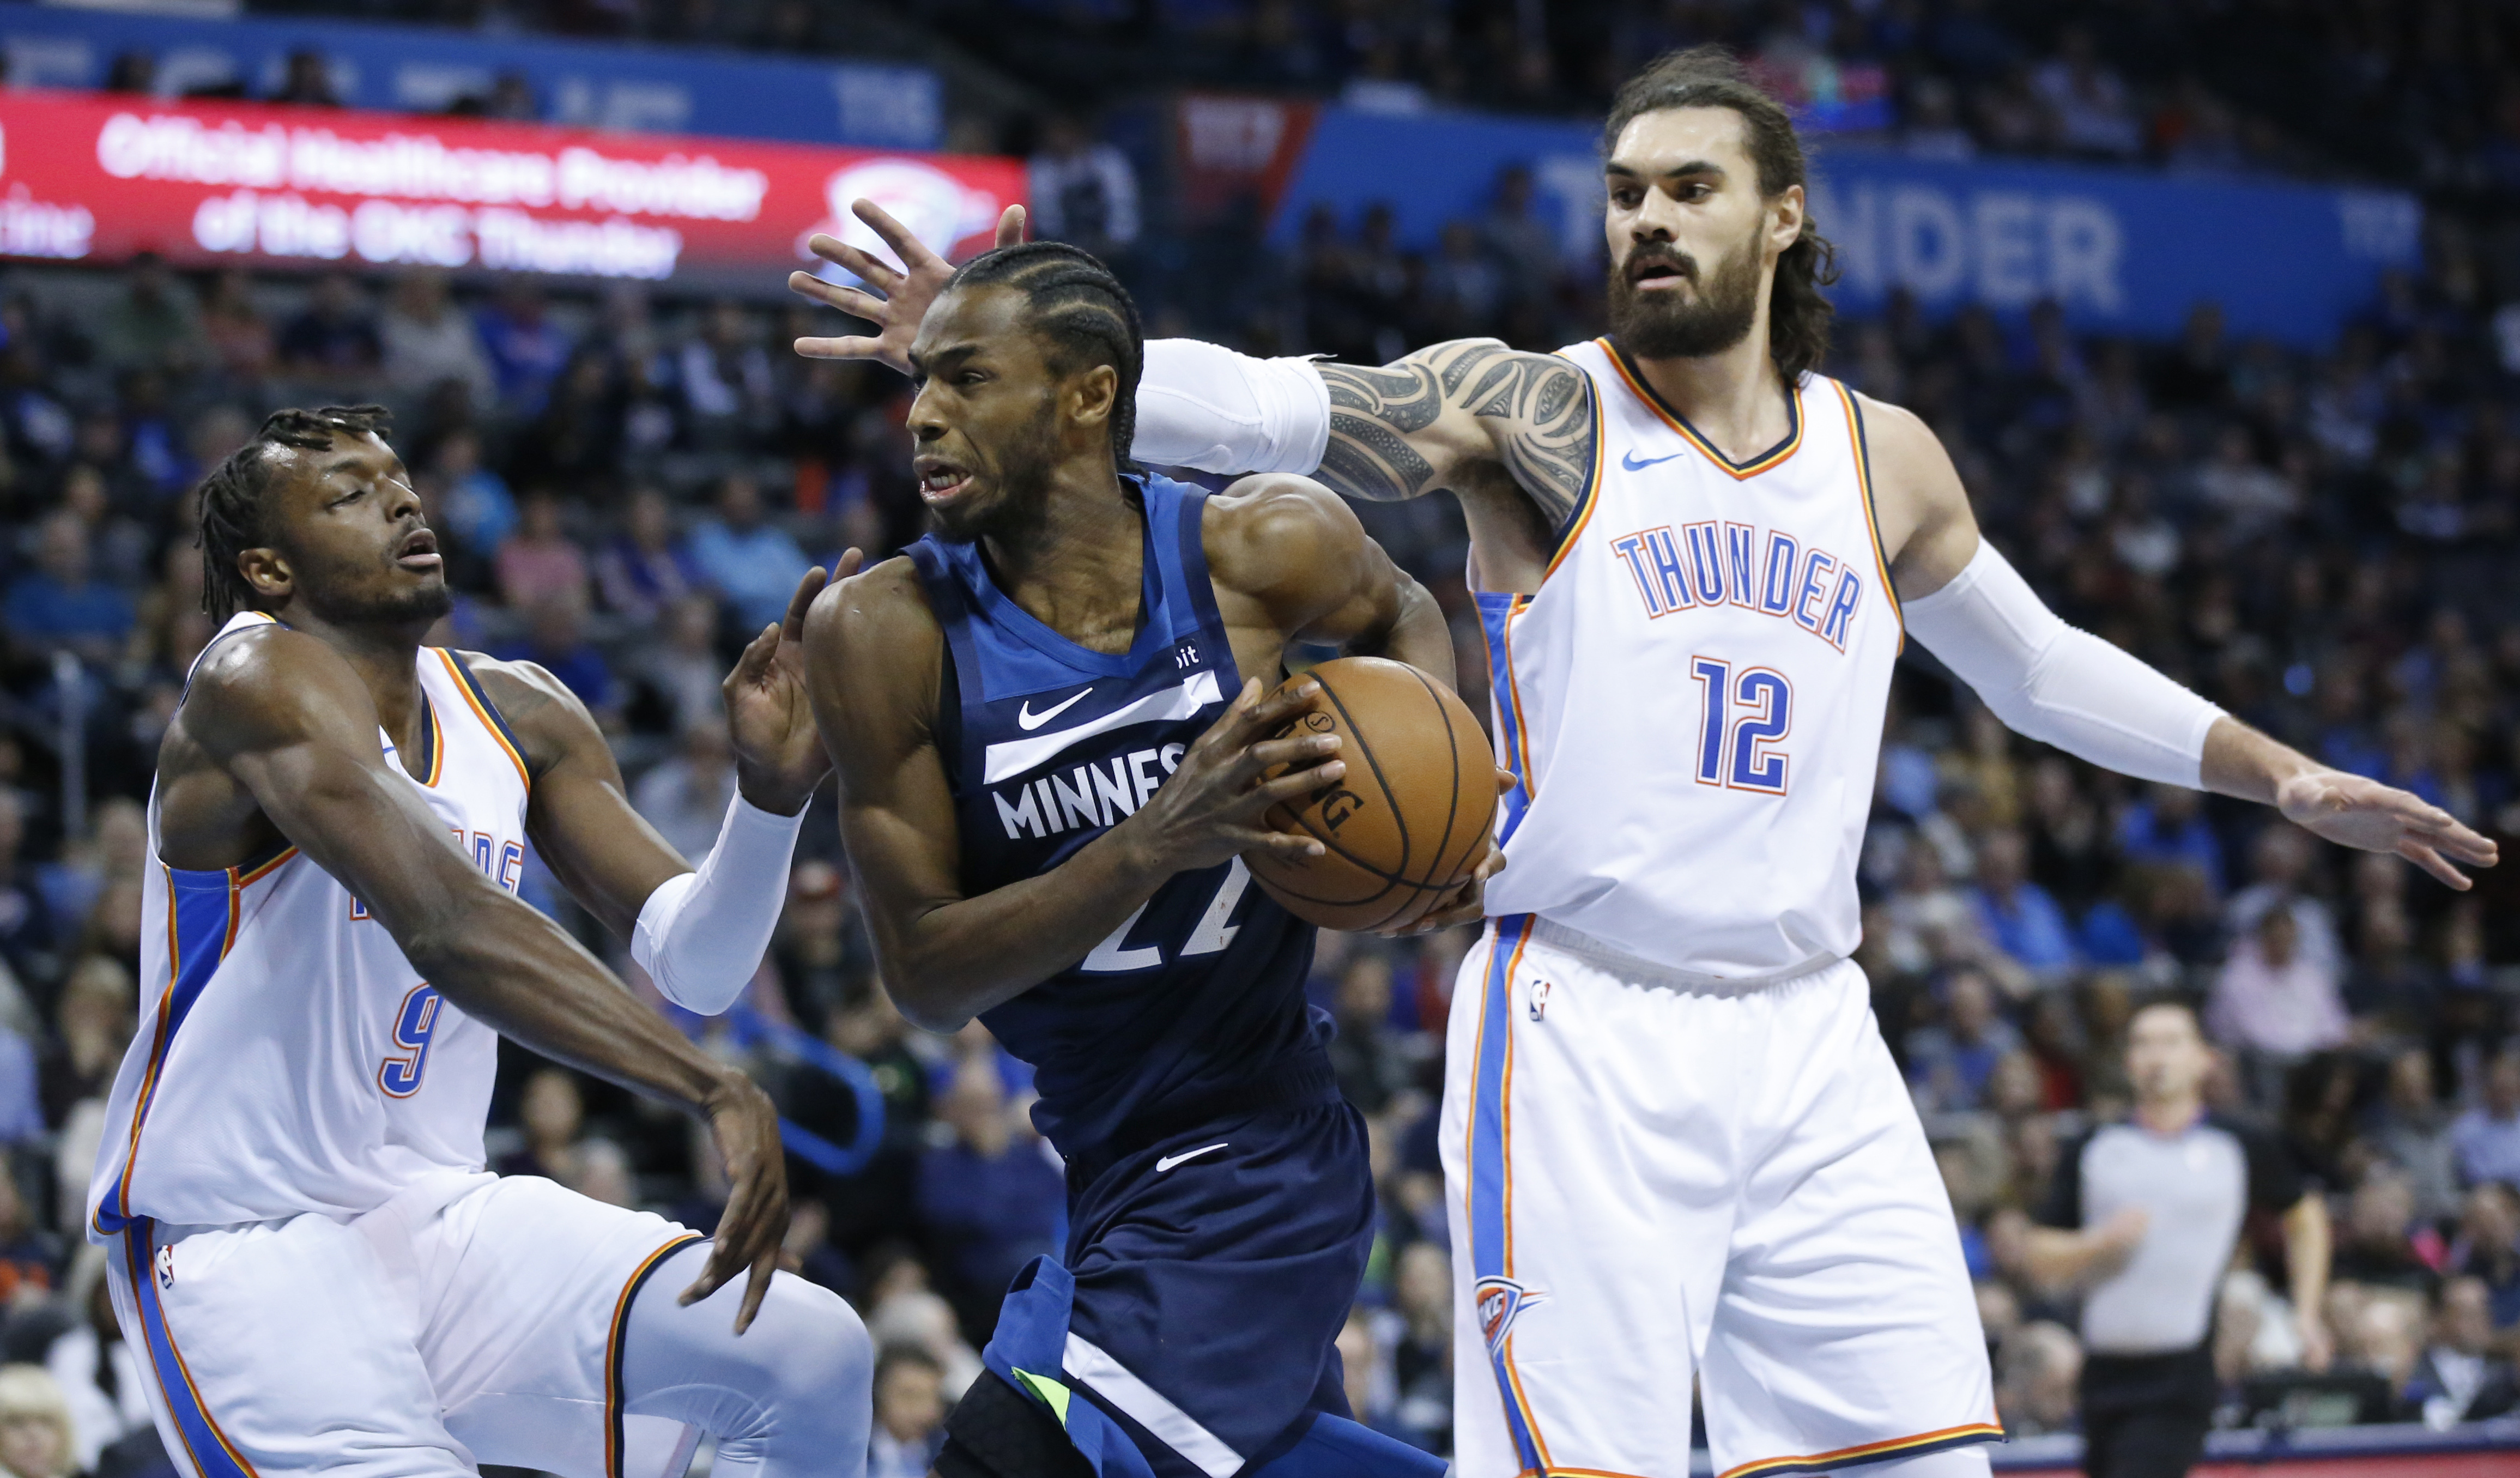 Wolves' Wiggins apologizes for using gay as derogatory term